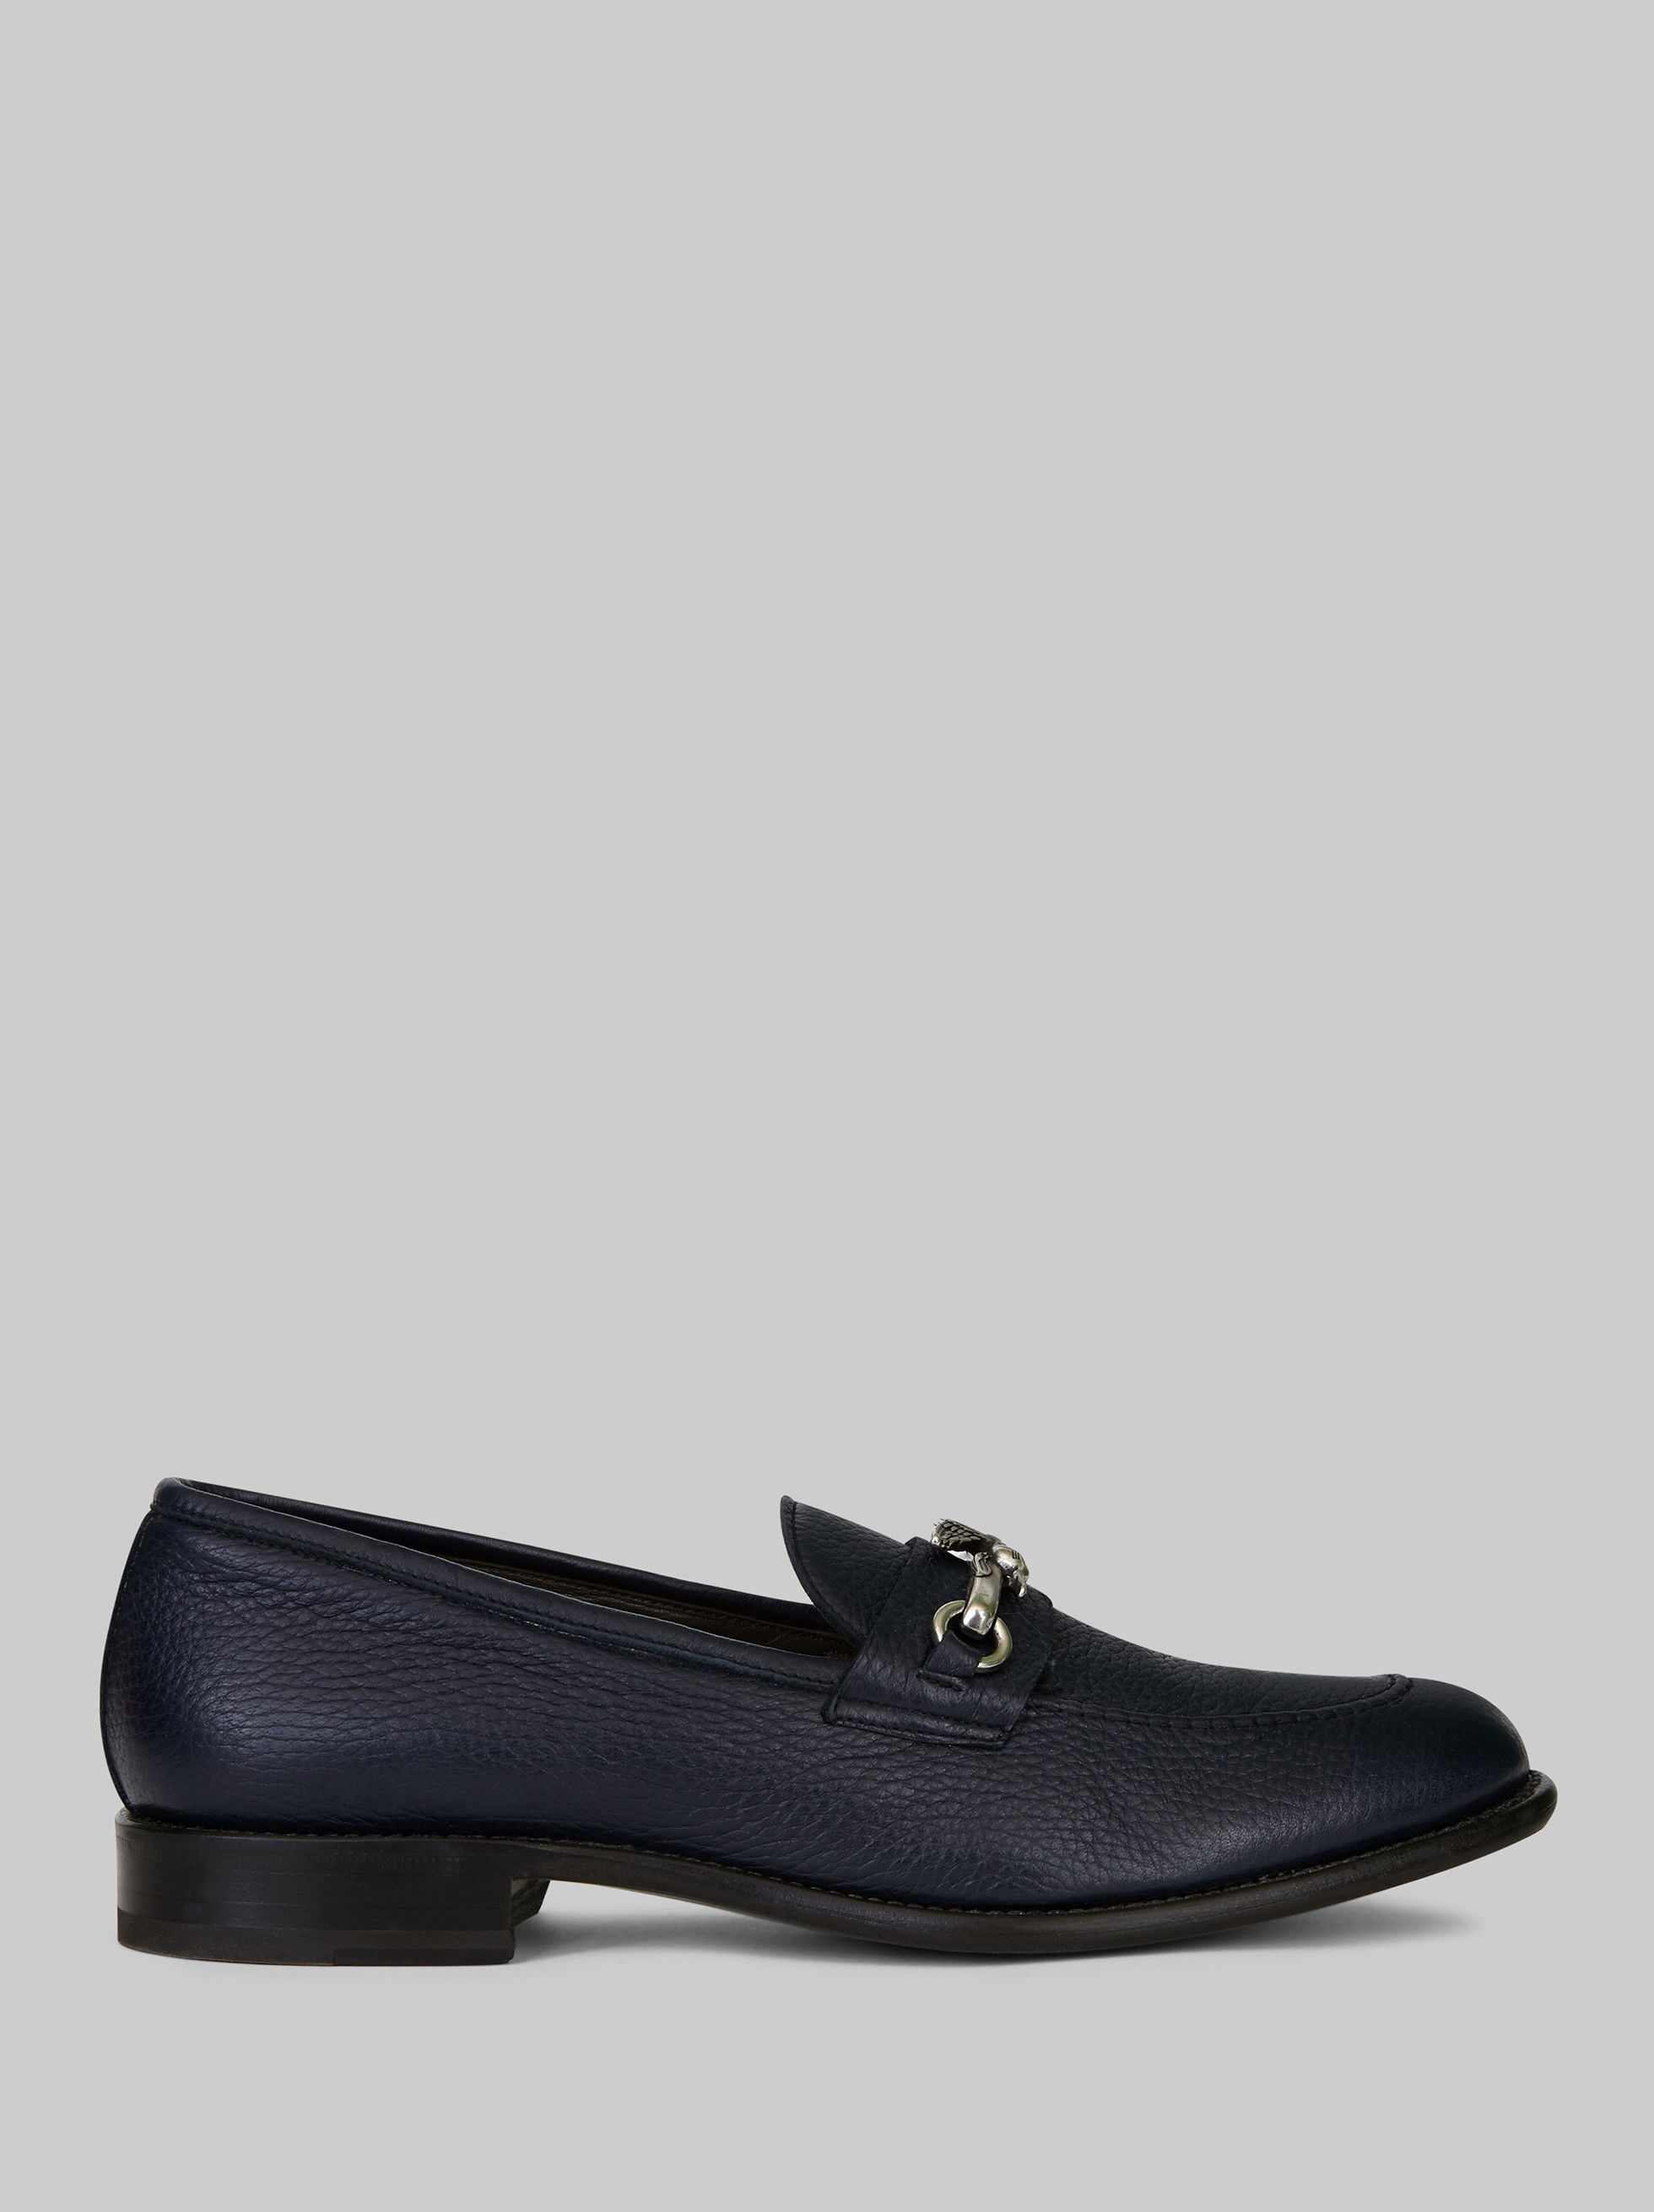 LEATHER LOAFERS WITH PEGASO